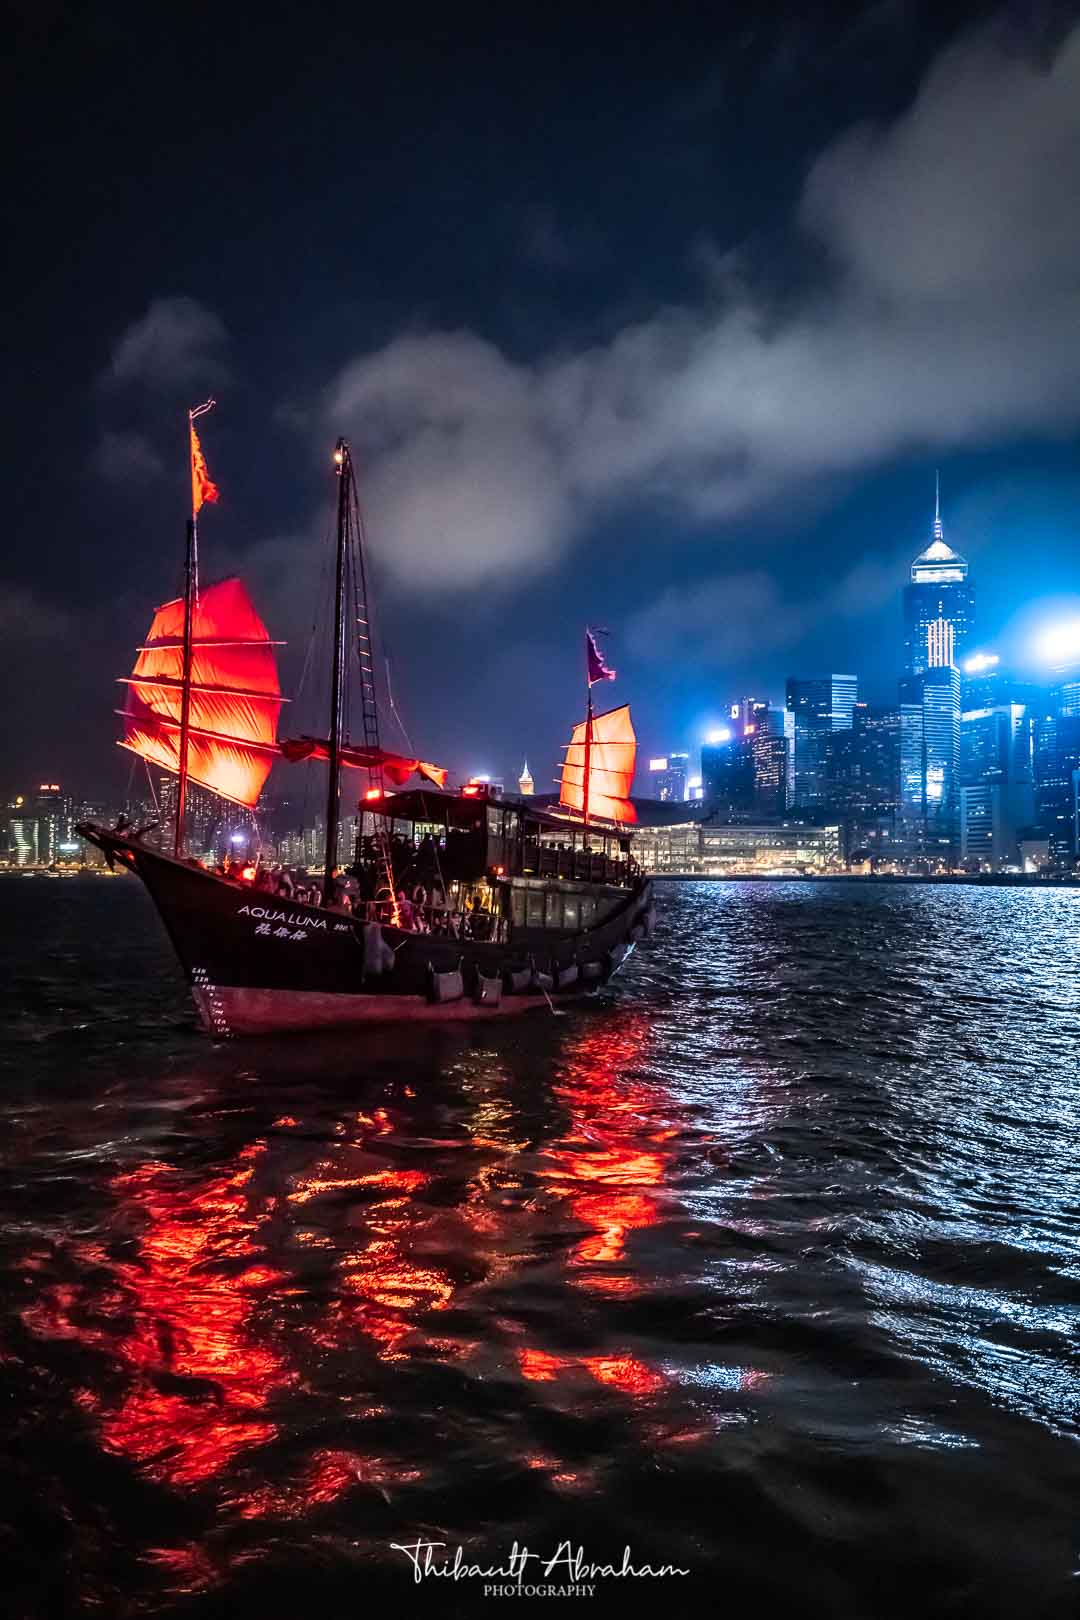 Aqualuna boat at night in Hong Kong